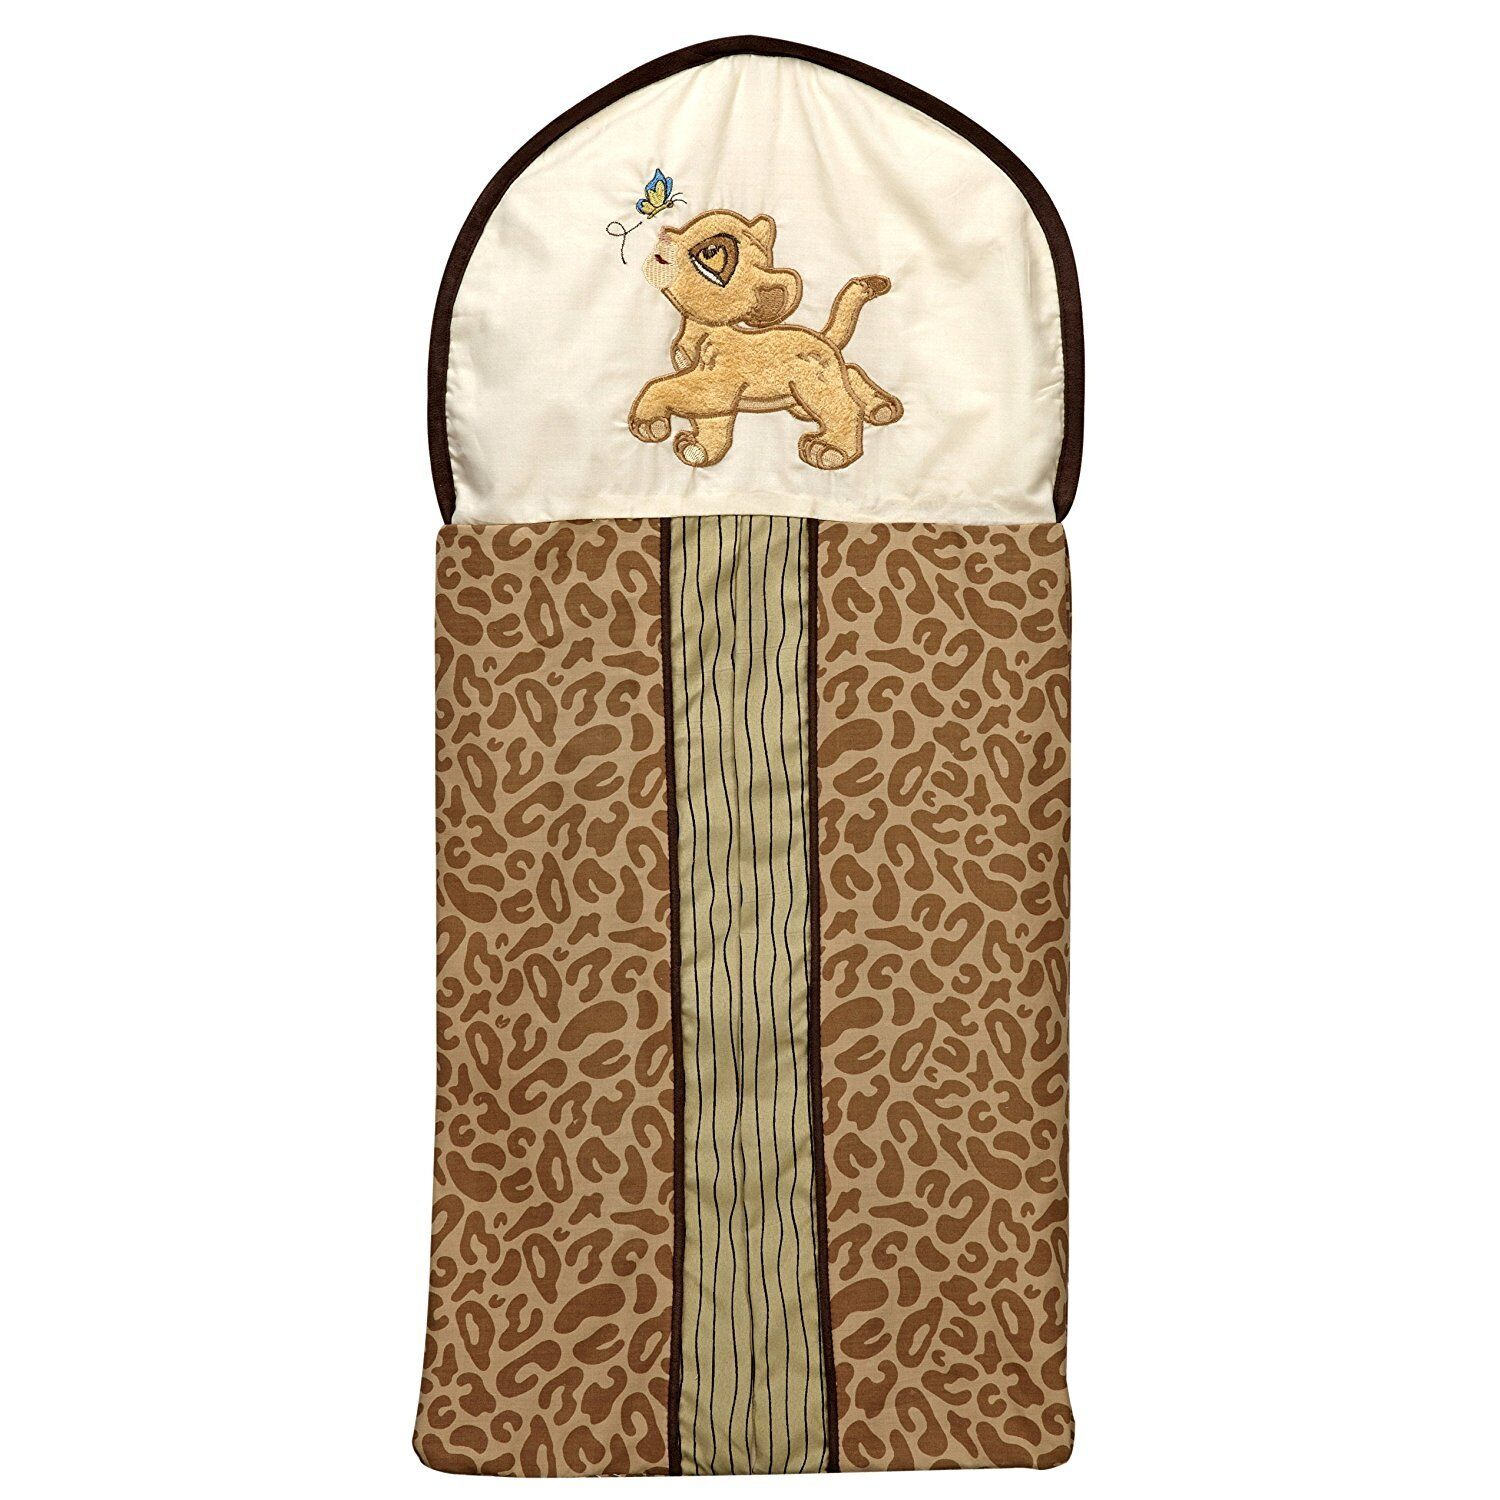 Disney Baby Lion King Diaper Stacker